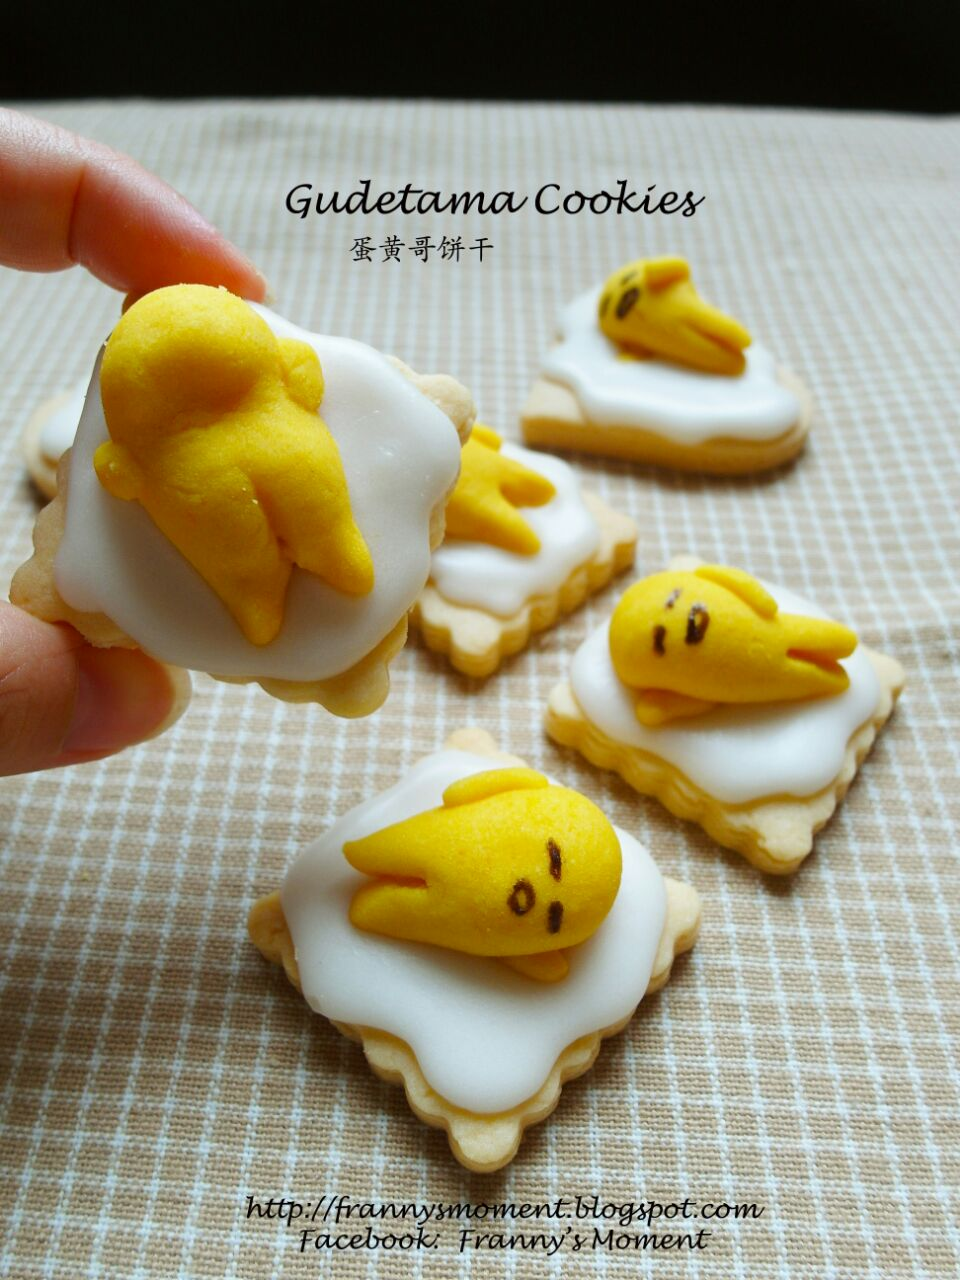 Gudetama Cookies .... LoL ...